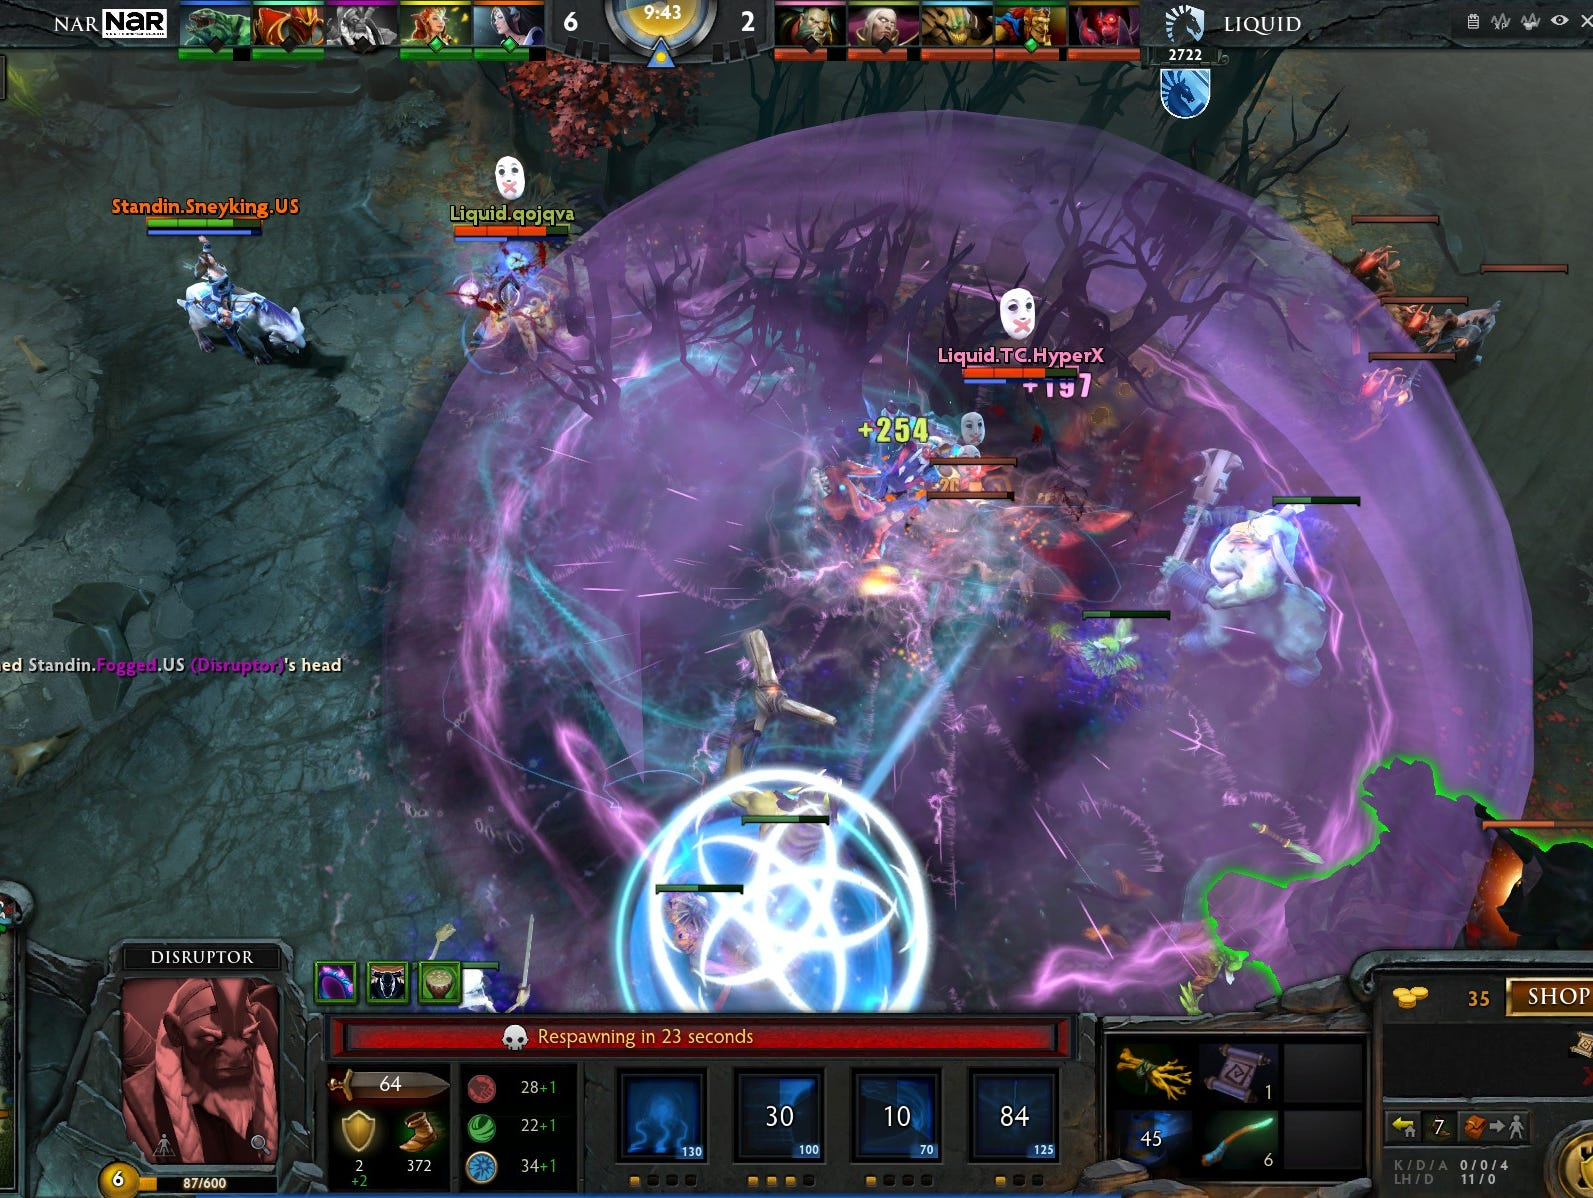 A scene from the game 'Dota 2.'